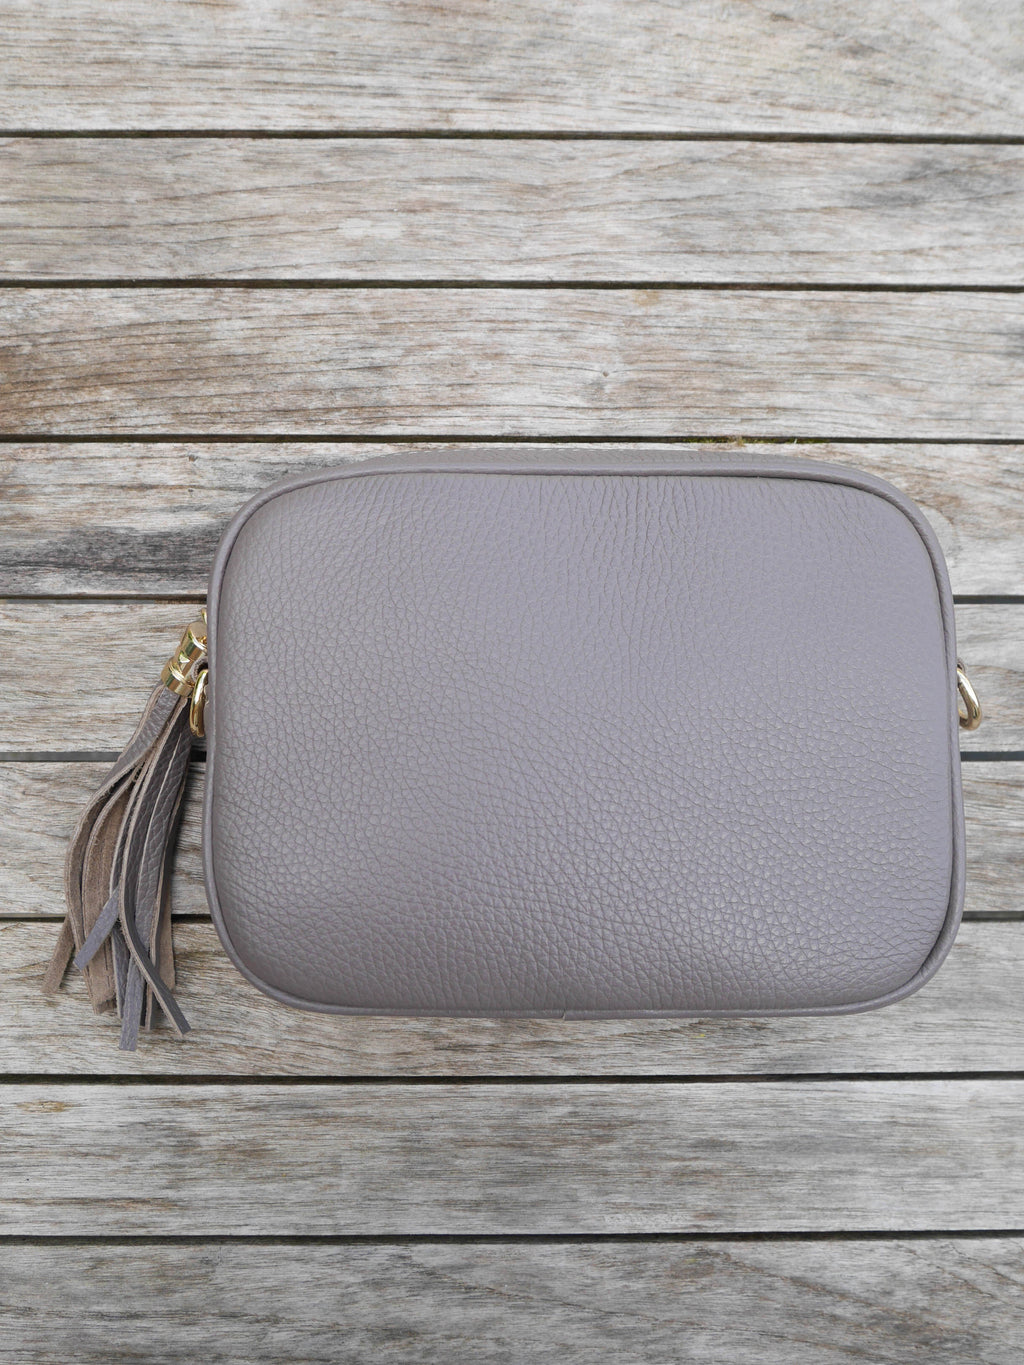 Mink Cross Body Leather Bag